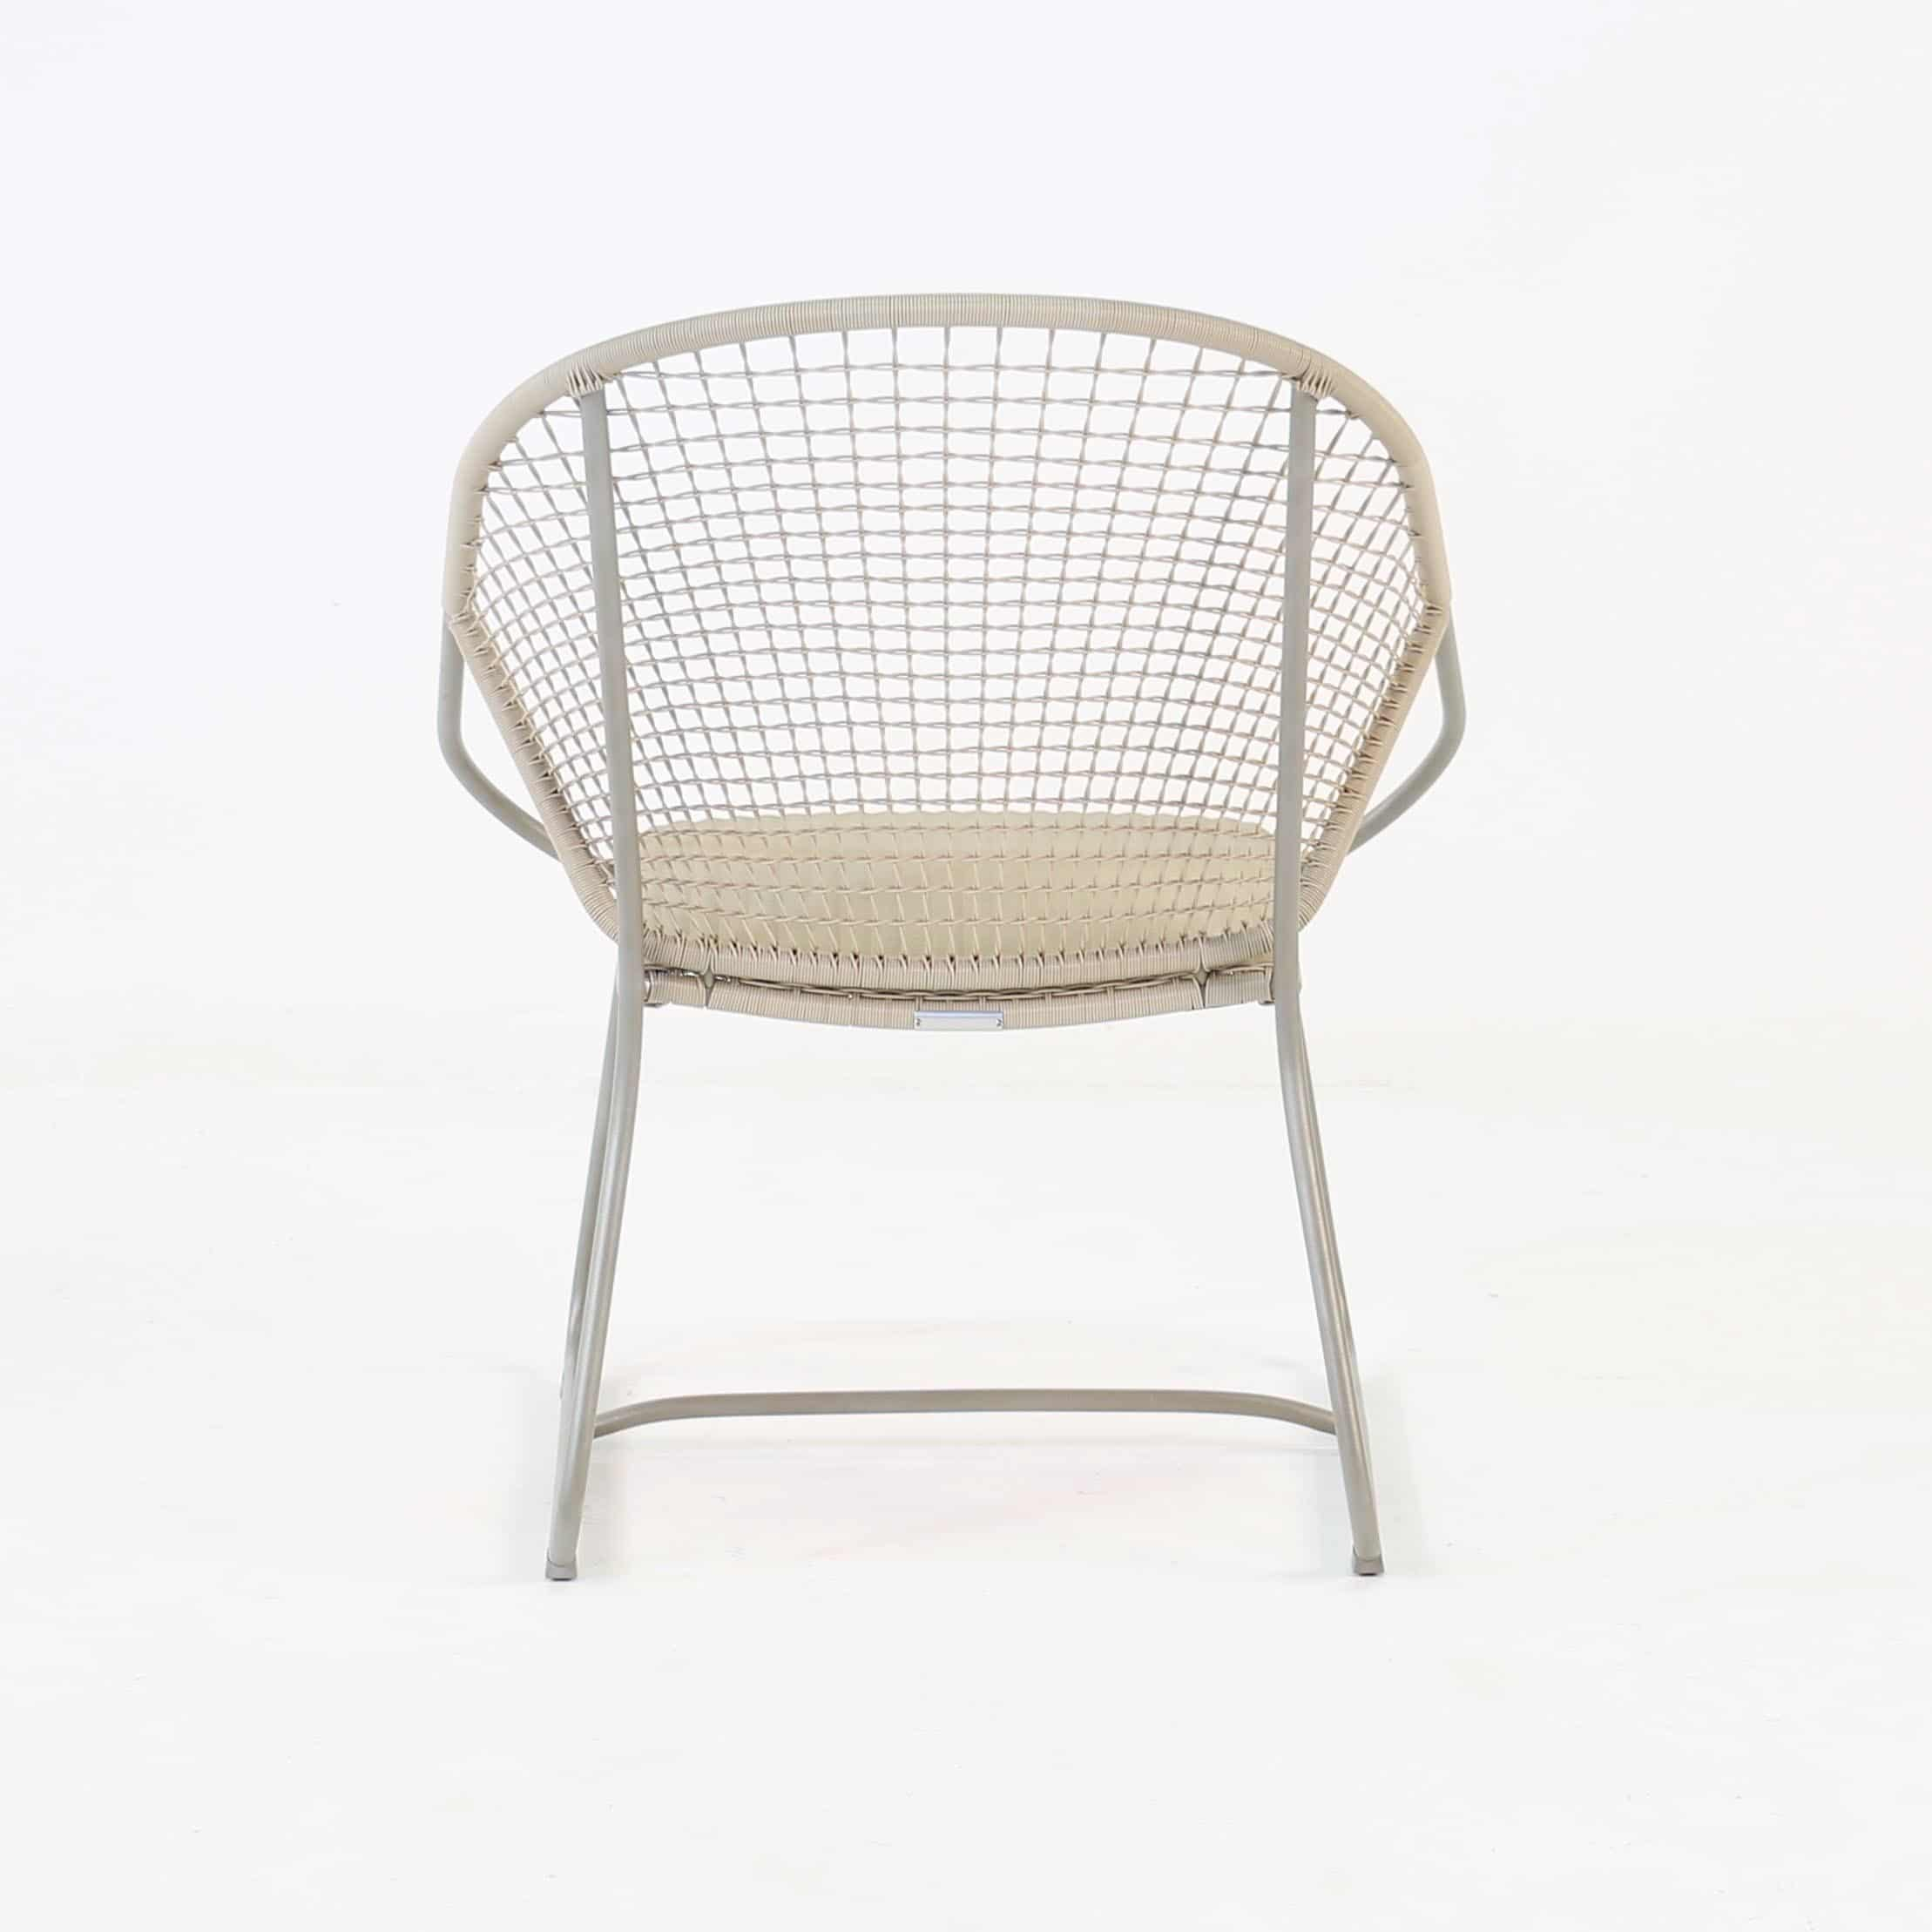 chair design back angle high cover john lewis omega outdoor wicker relaxing arm white